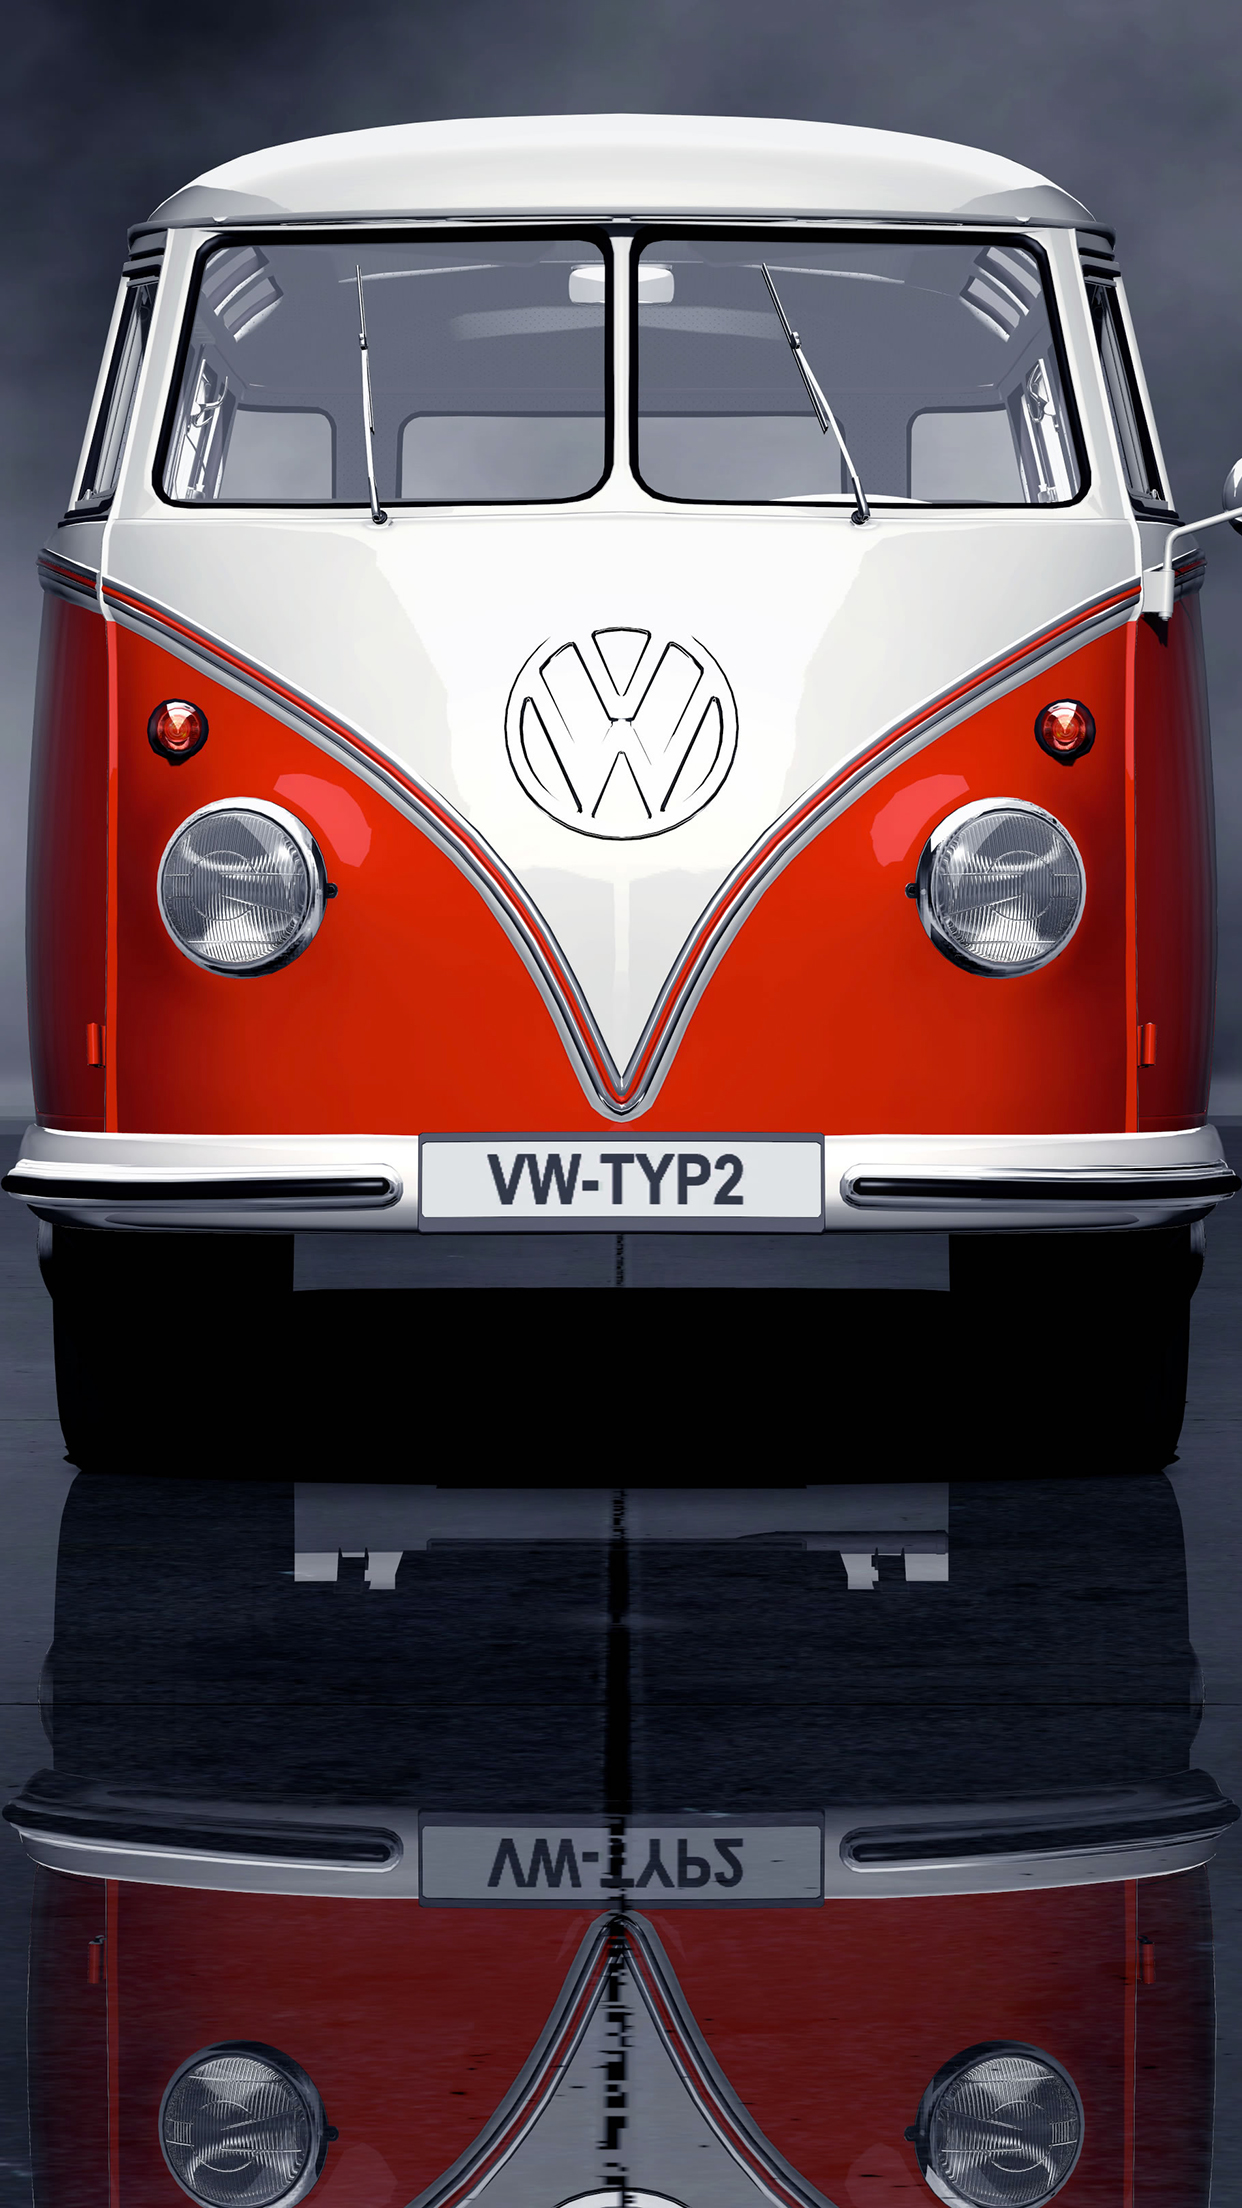 Volkswagen Combi Wallpaper For Iphone X 8 7 6 Free